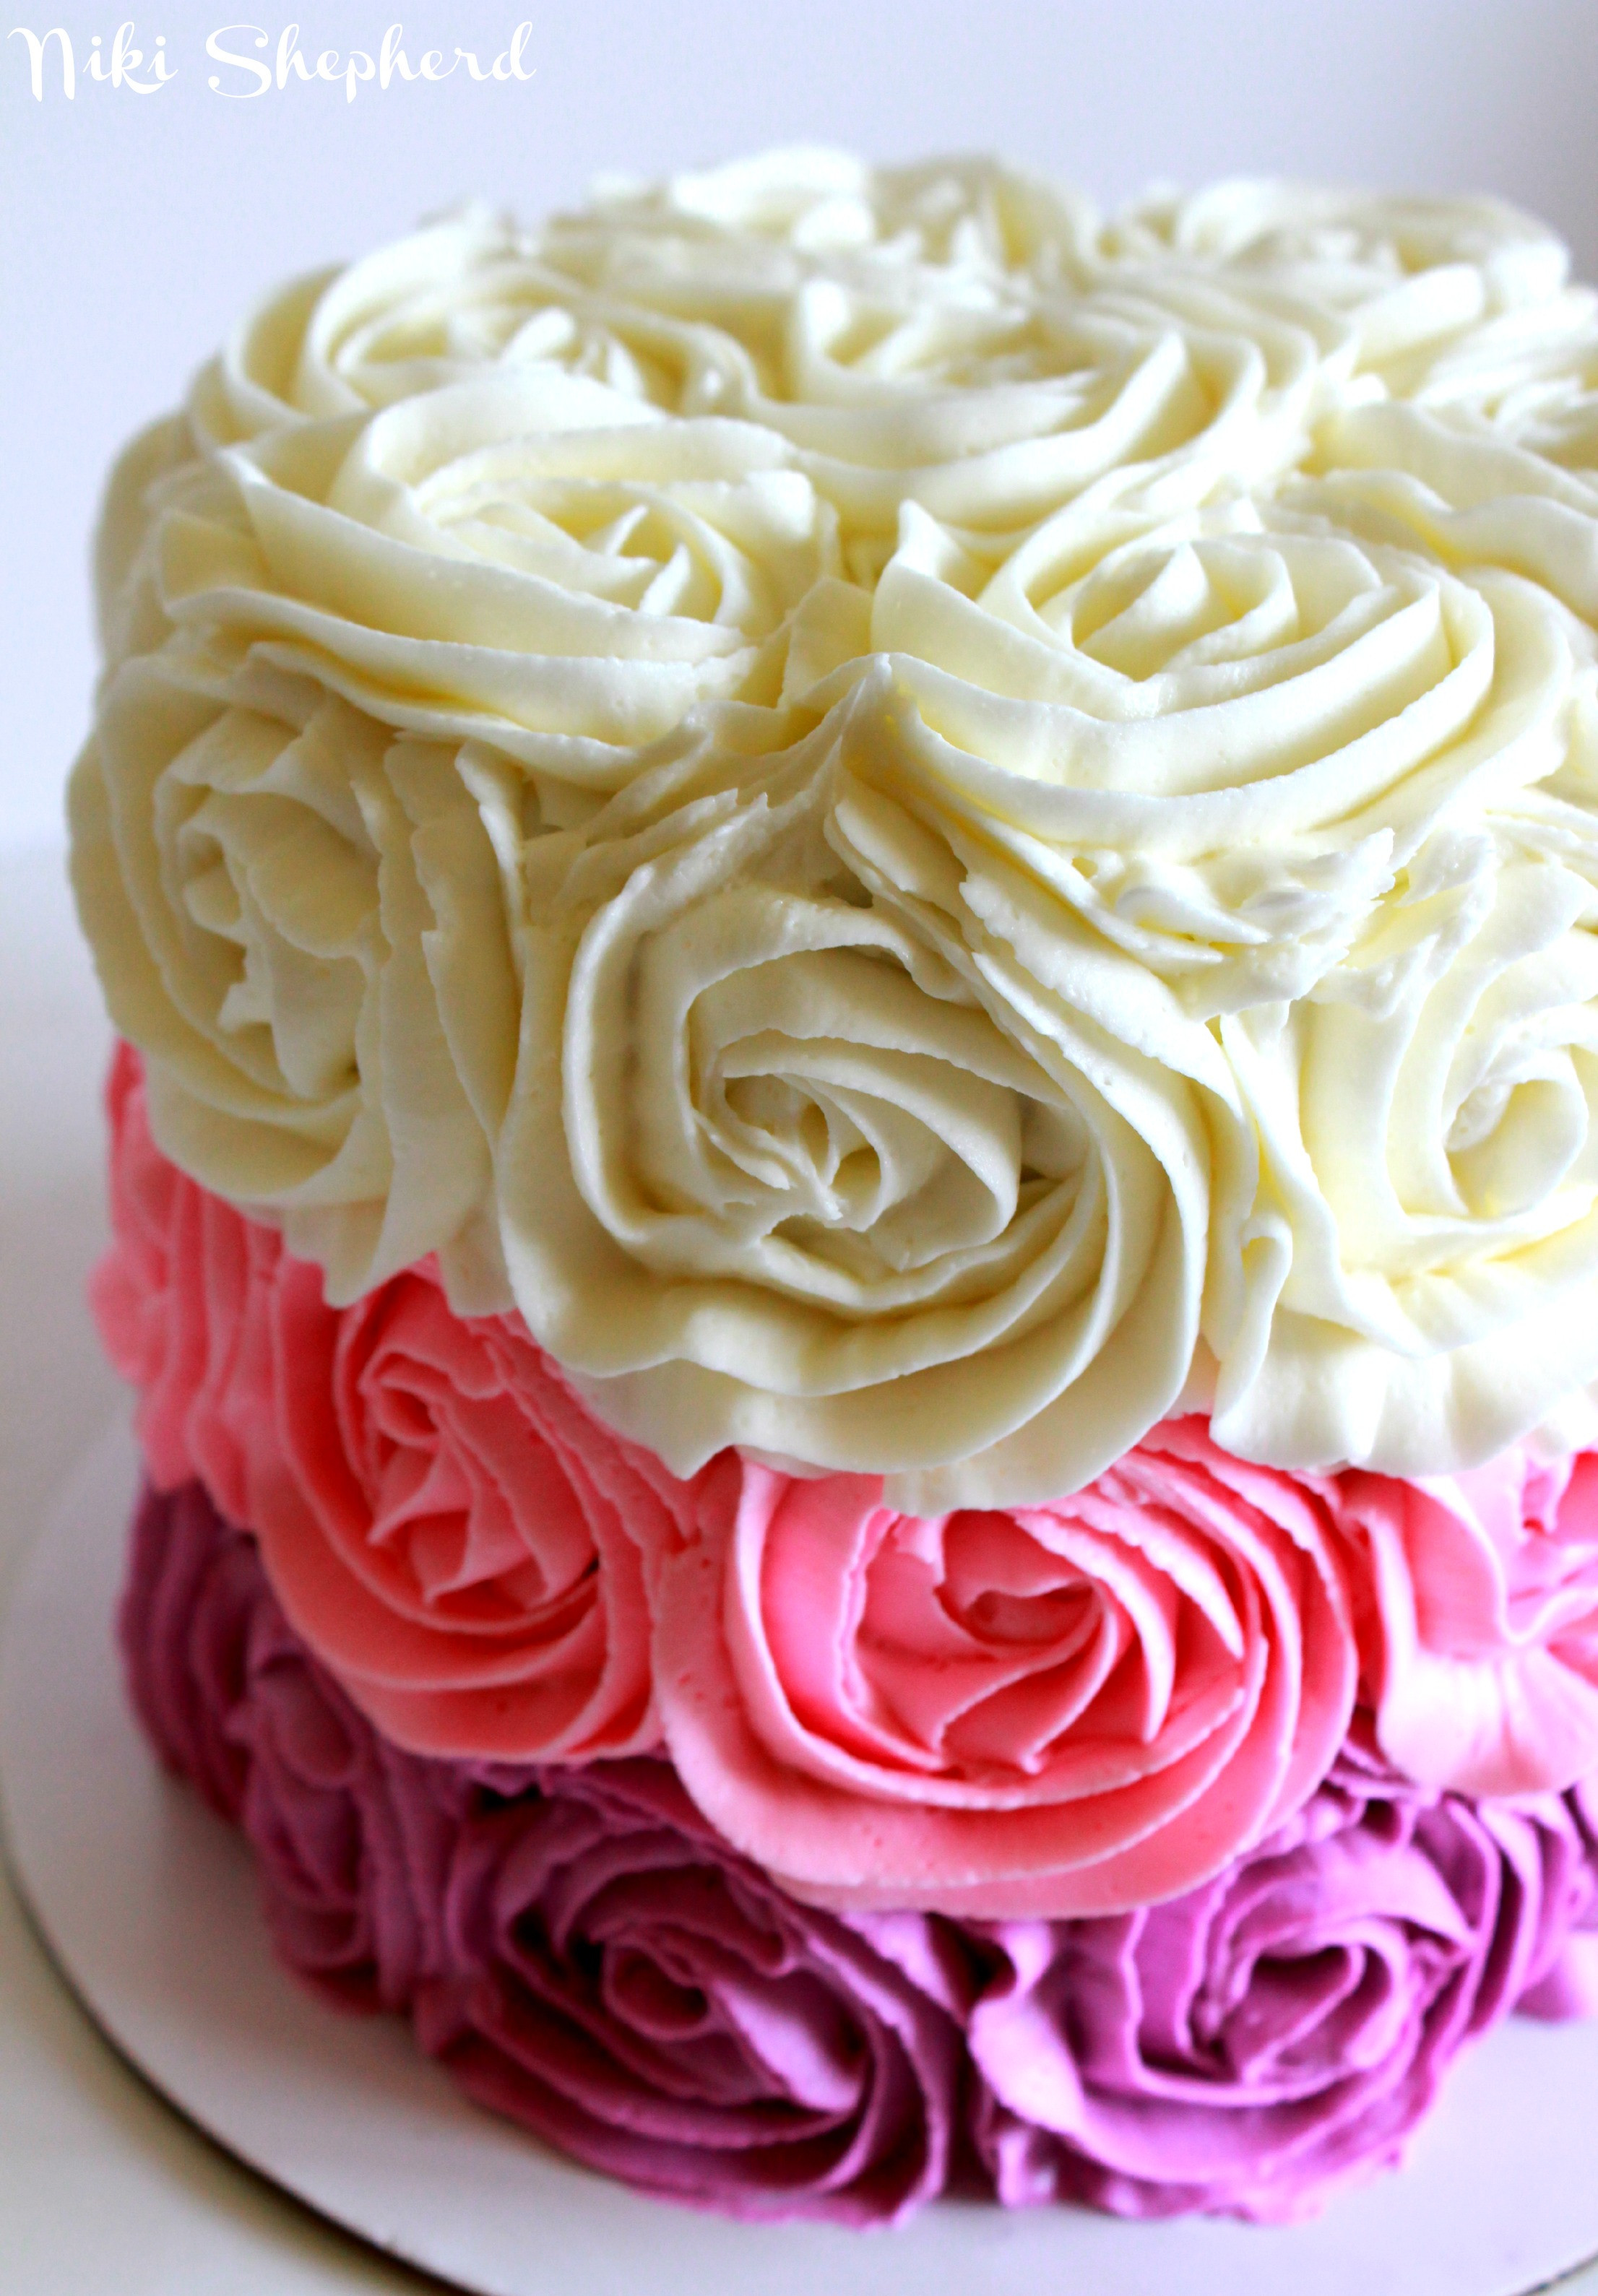 Best ideas about Roses Birthday Cake . Save or Pin My take on i am baker's Rose Cake Now.